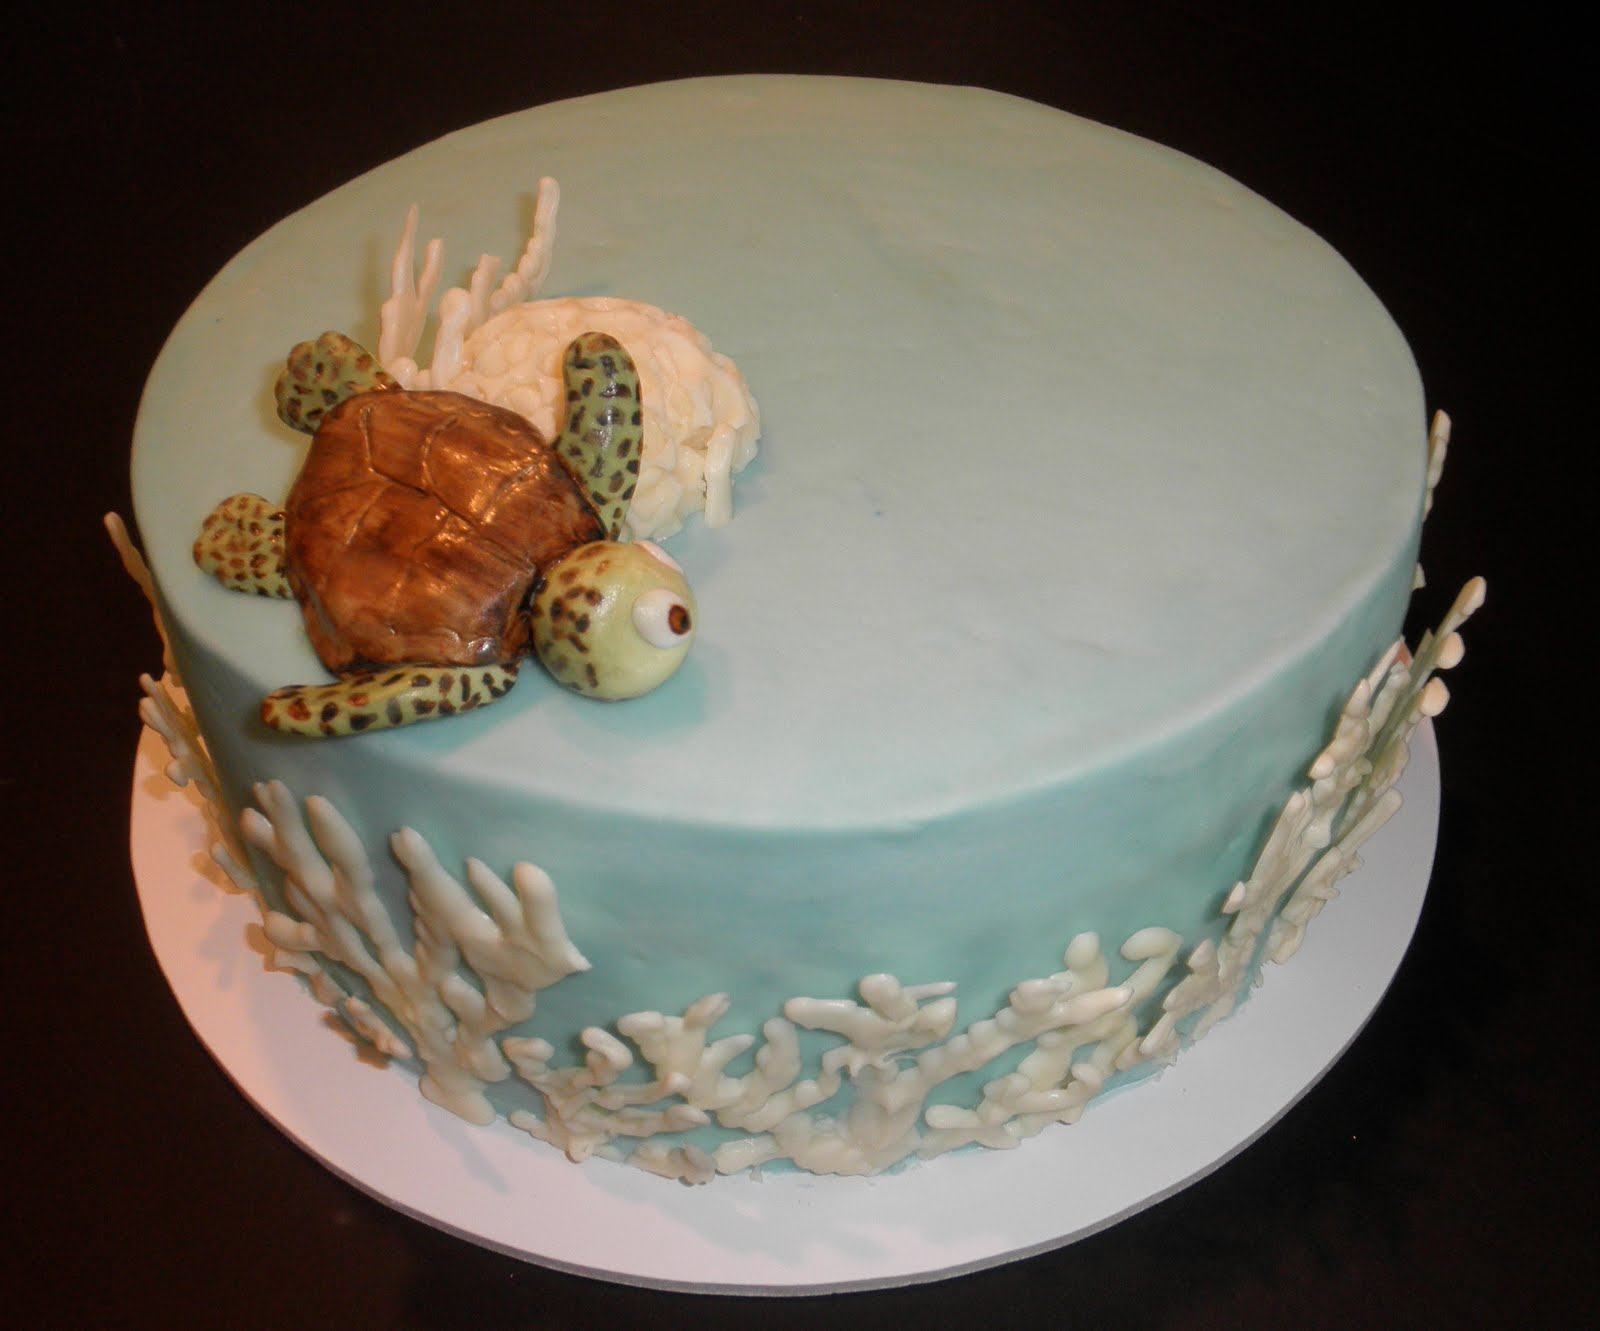 Sweet T S Cake Design Sea Turtle Brain Coral And Finger